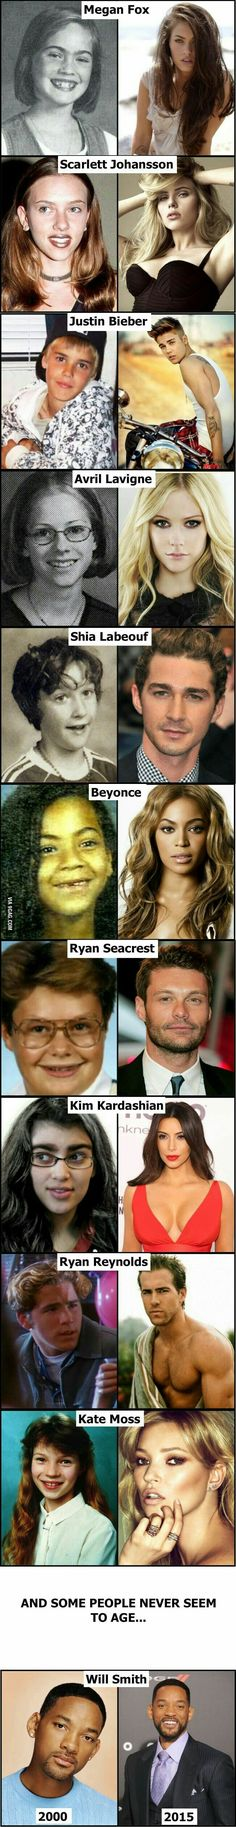 Celebs before and after fame. Will Smith never ages.